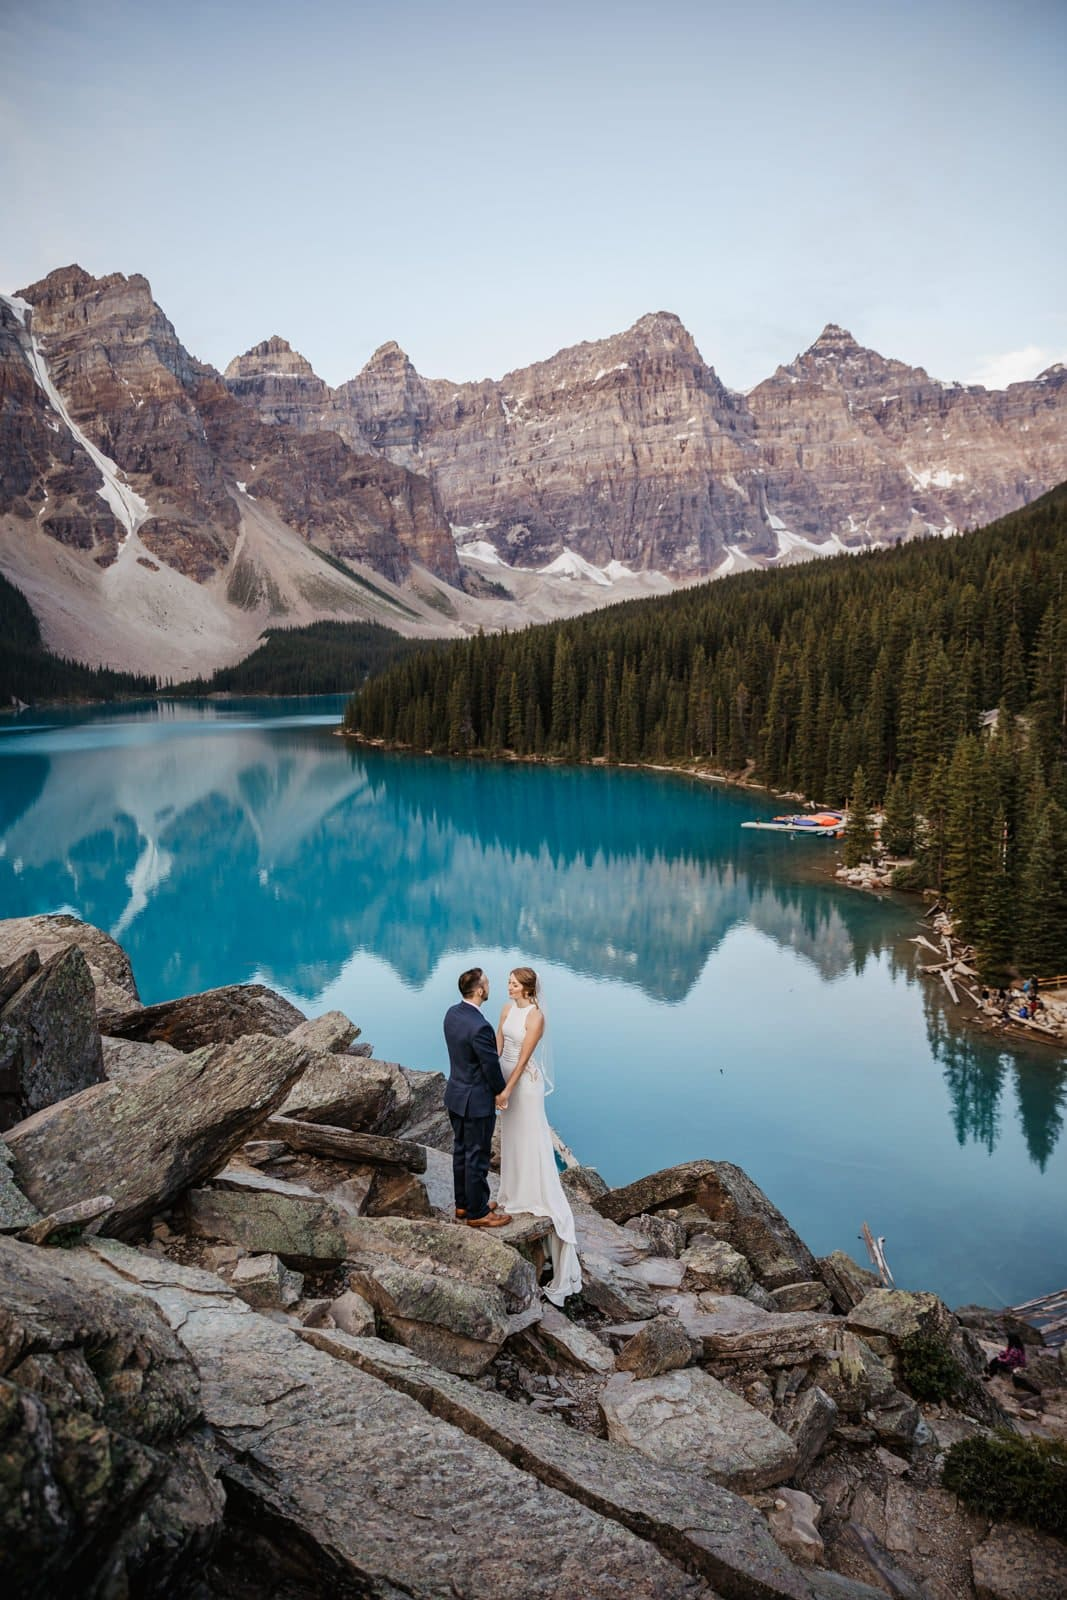 Couple standing next to pretty blue water in banff national park